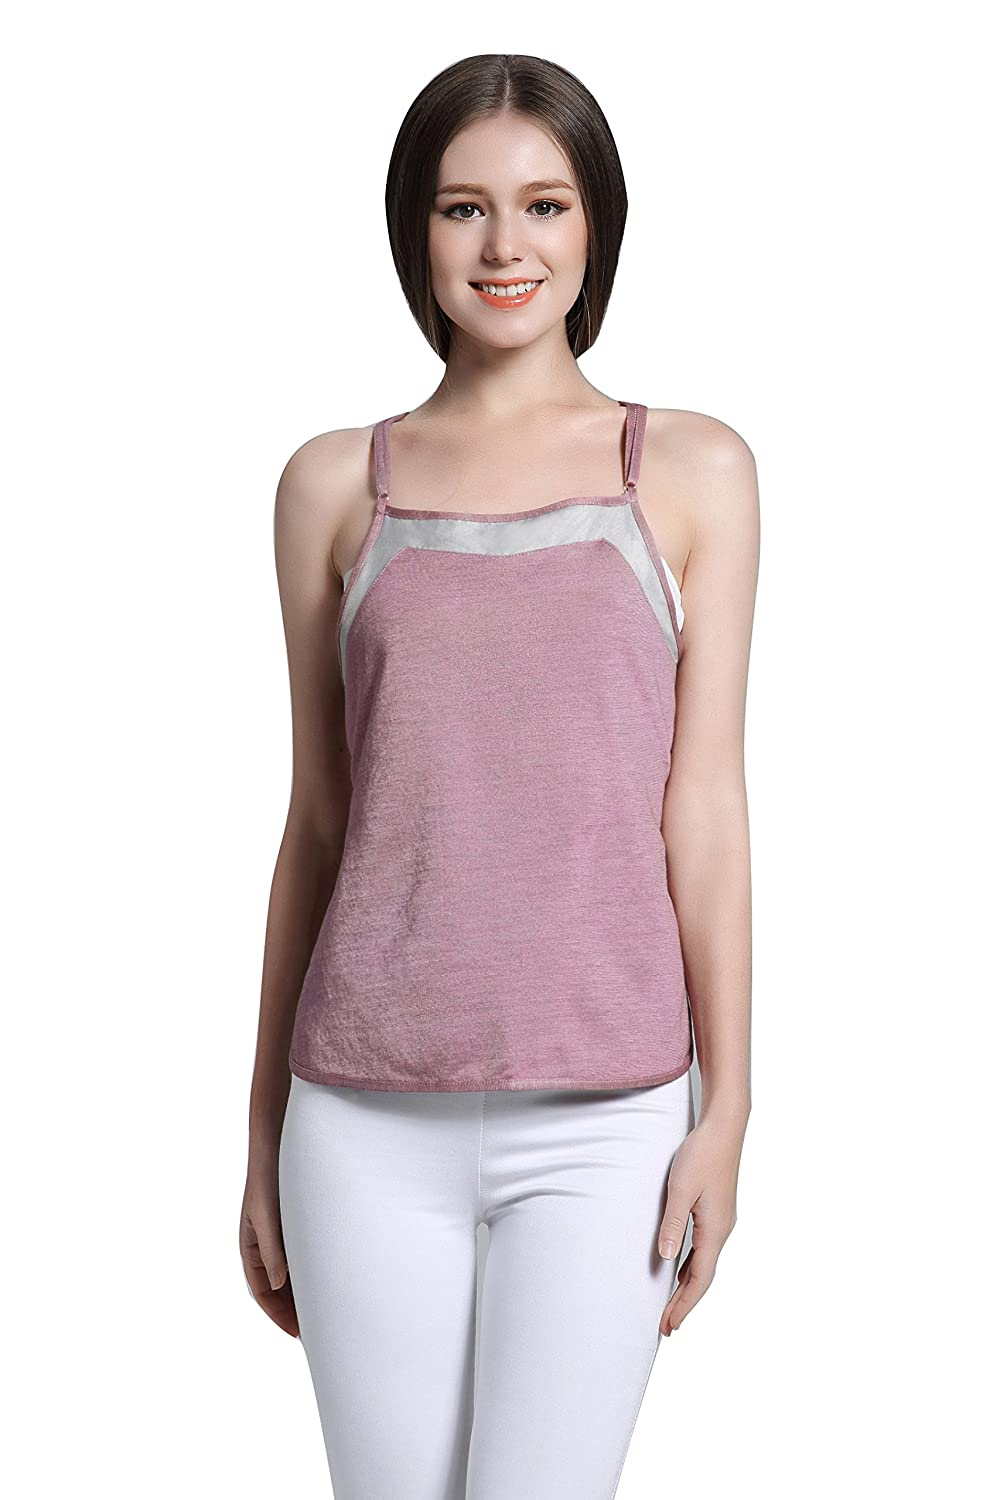 911048ce106 JOYNCLEON Anti-Radiation Maternity Tank-Top Belly Protective Shield Double- Layer Silver Fiber Clothes For Pregnant Women jy0033